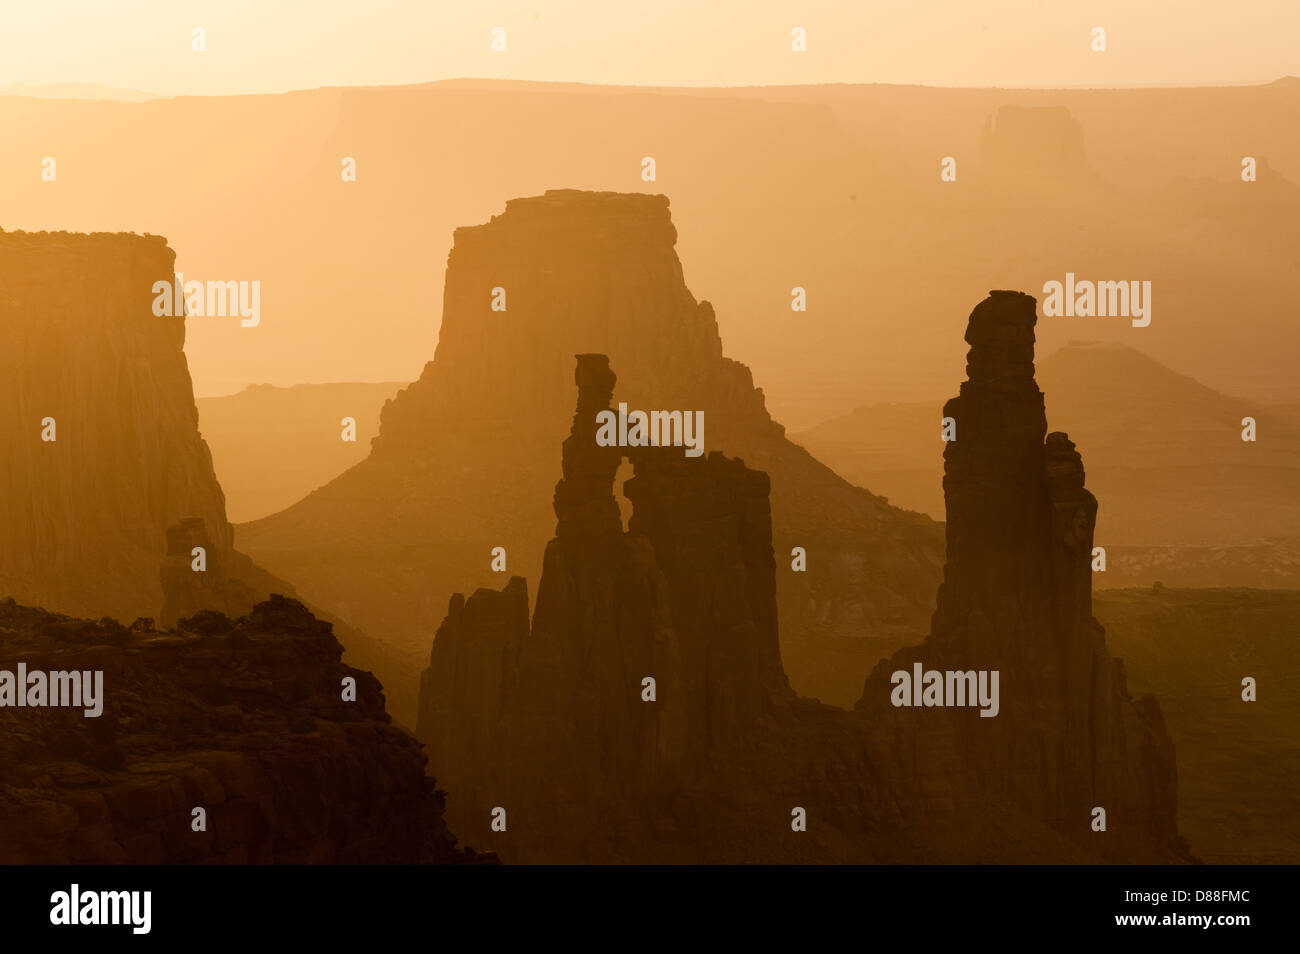 Rock spires and mesas recede into the distance as seen at Canyonlands National Park, Utah shortly after sunrise. Stock Photo